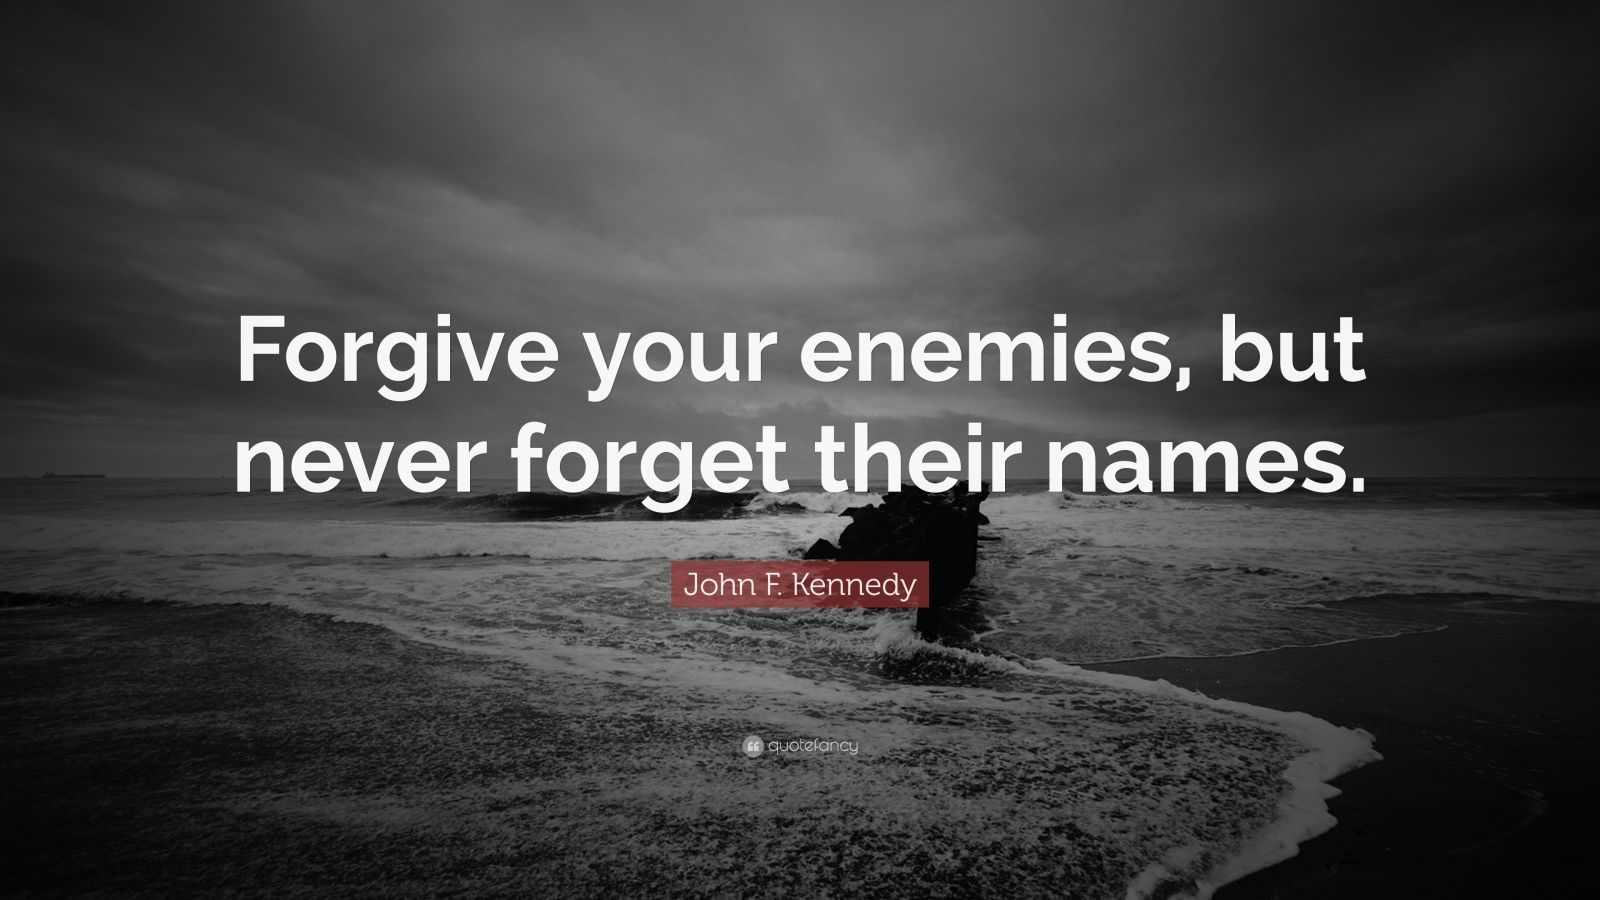 John F Kennedy Quote Forgive Your Enemies But Never Forget Their Names